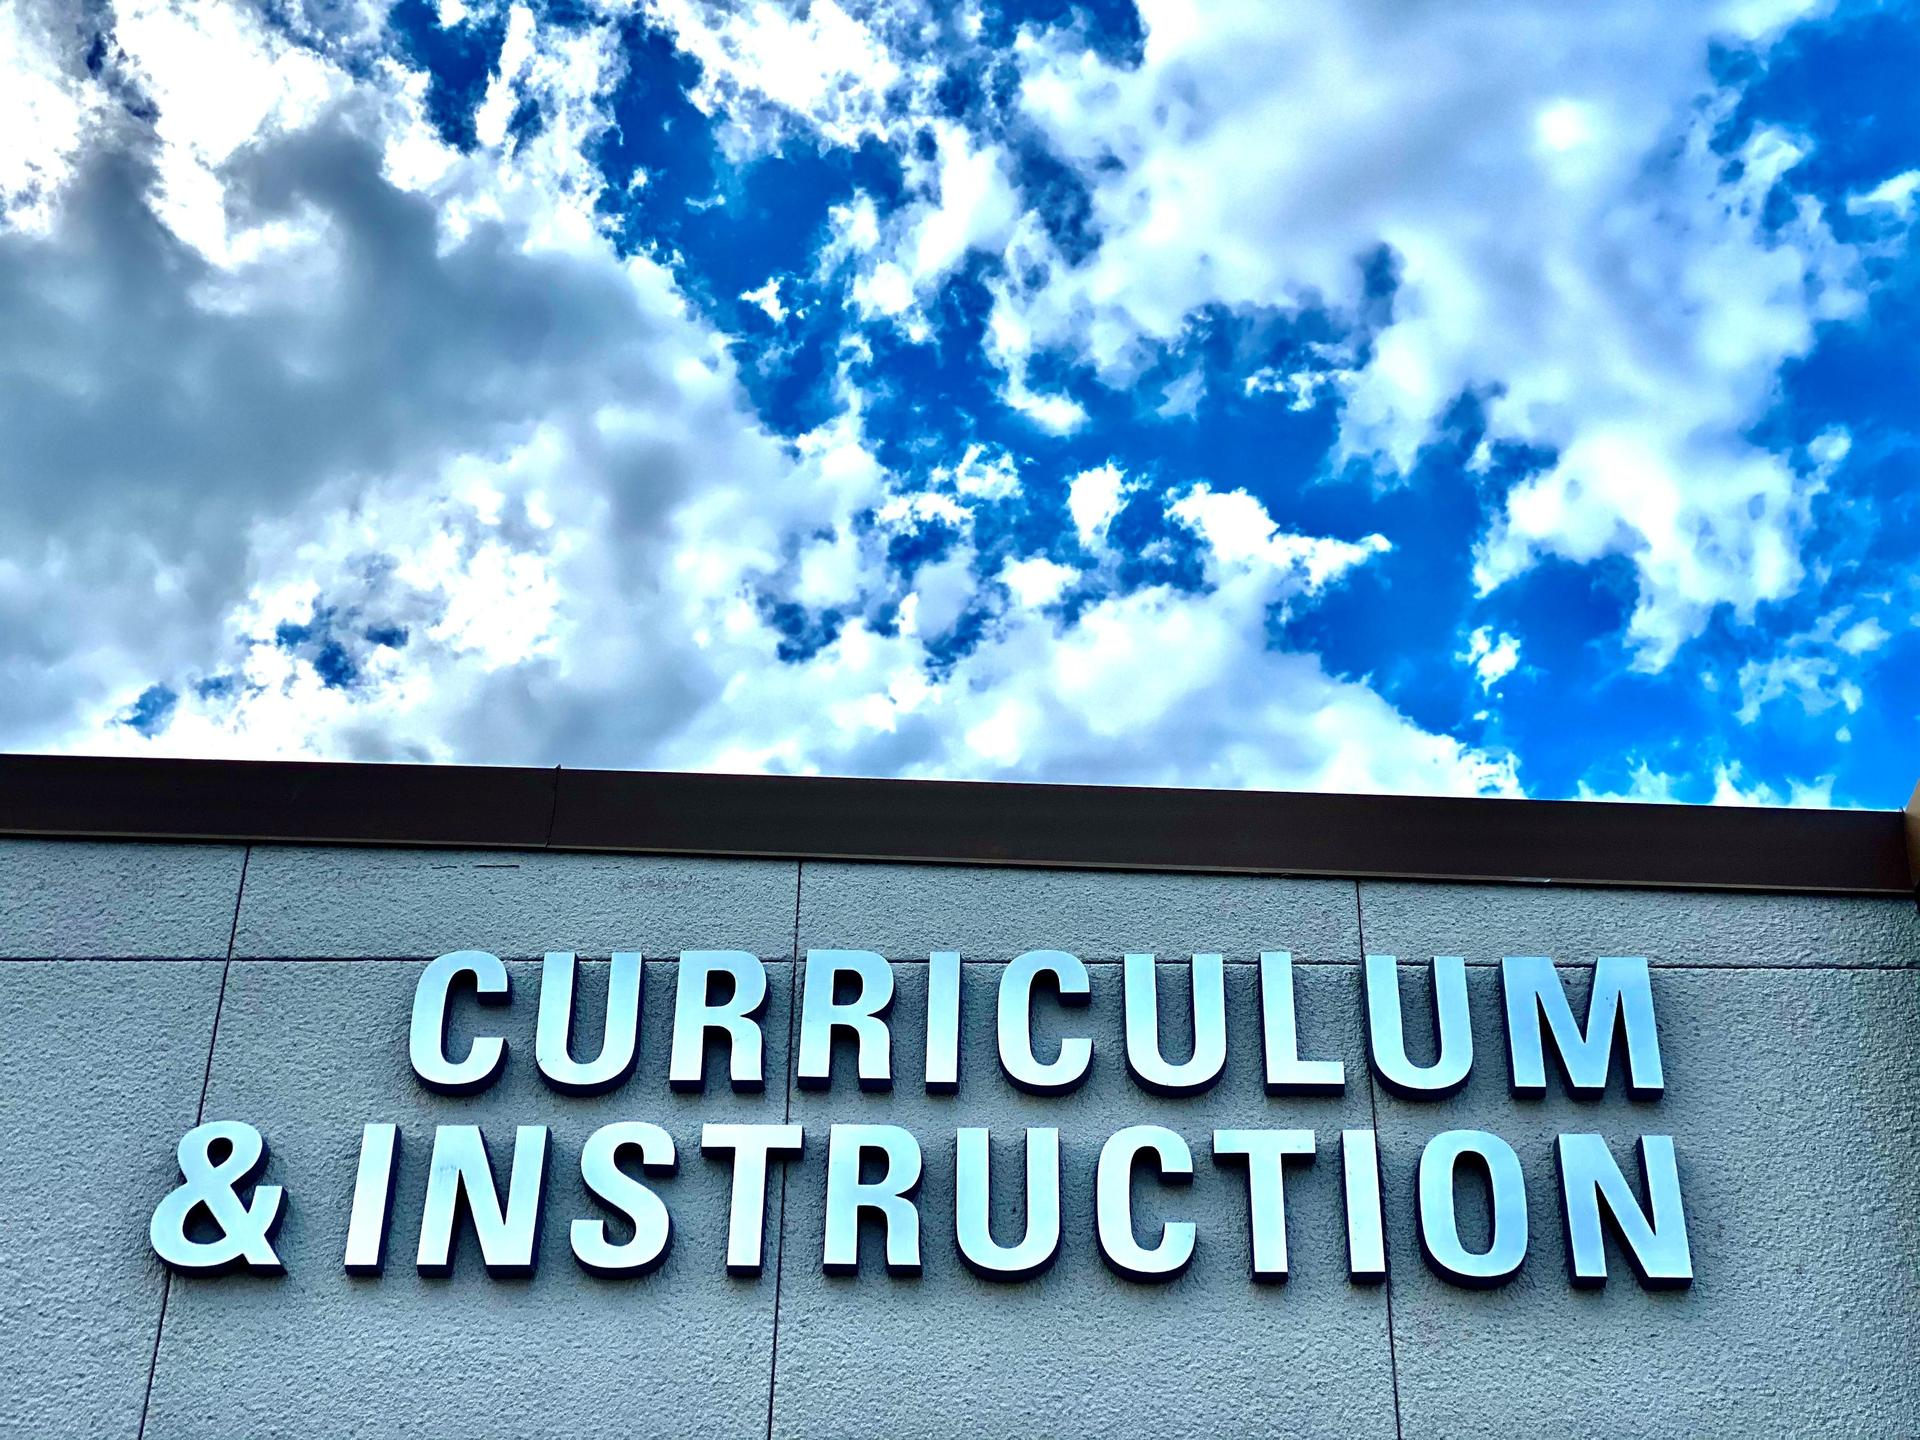 Curriculum and Instruction outside sign